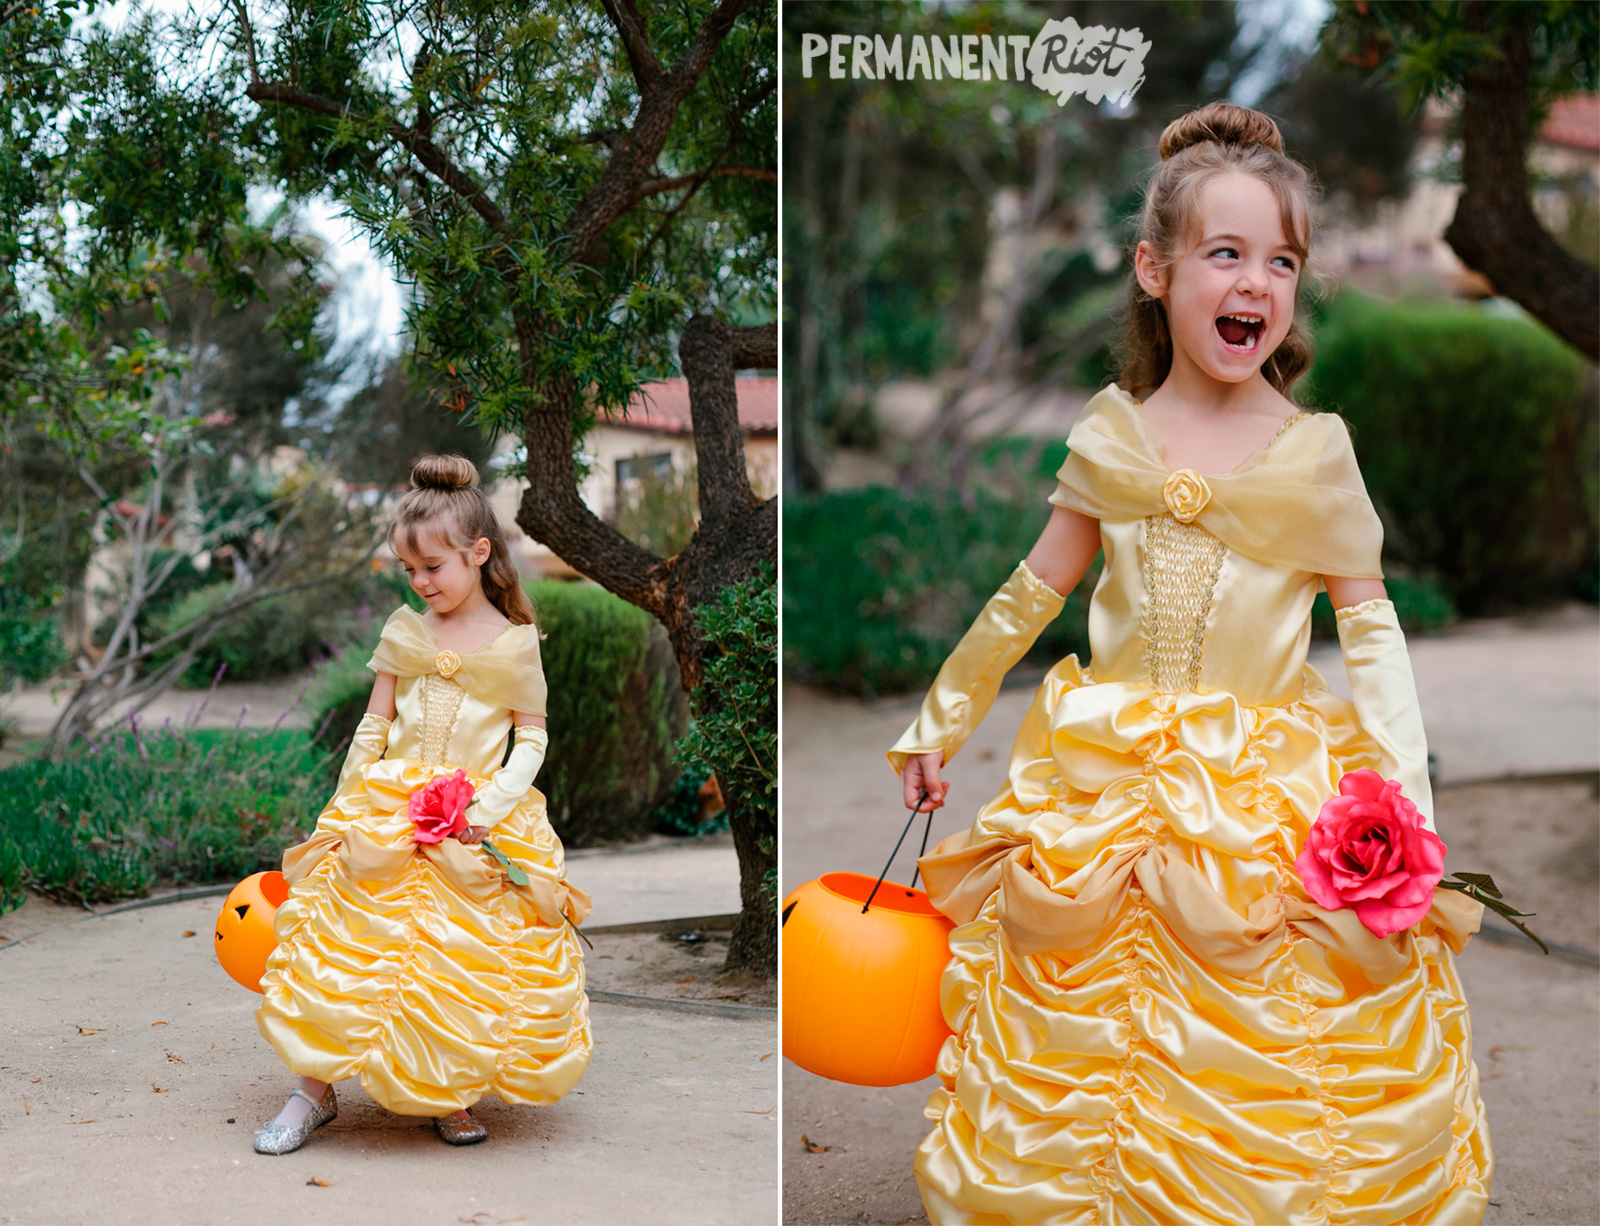 Childrens Belle dress halloween costume ...  sc 1 st  Permanent Riot & sewing u2013 Permanent Riot